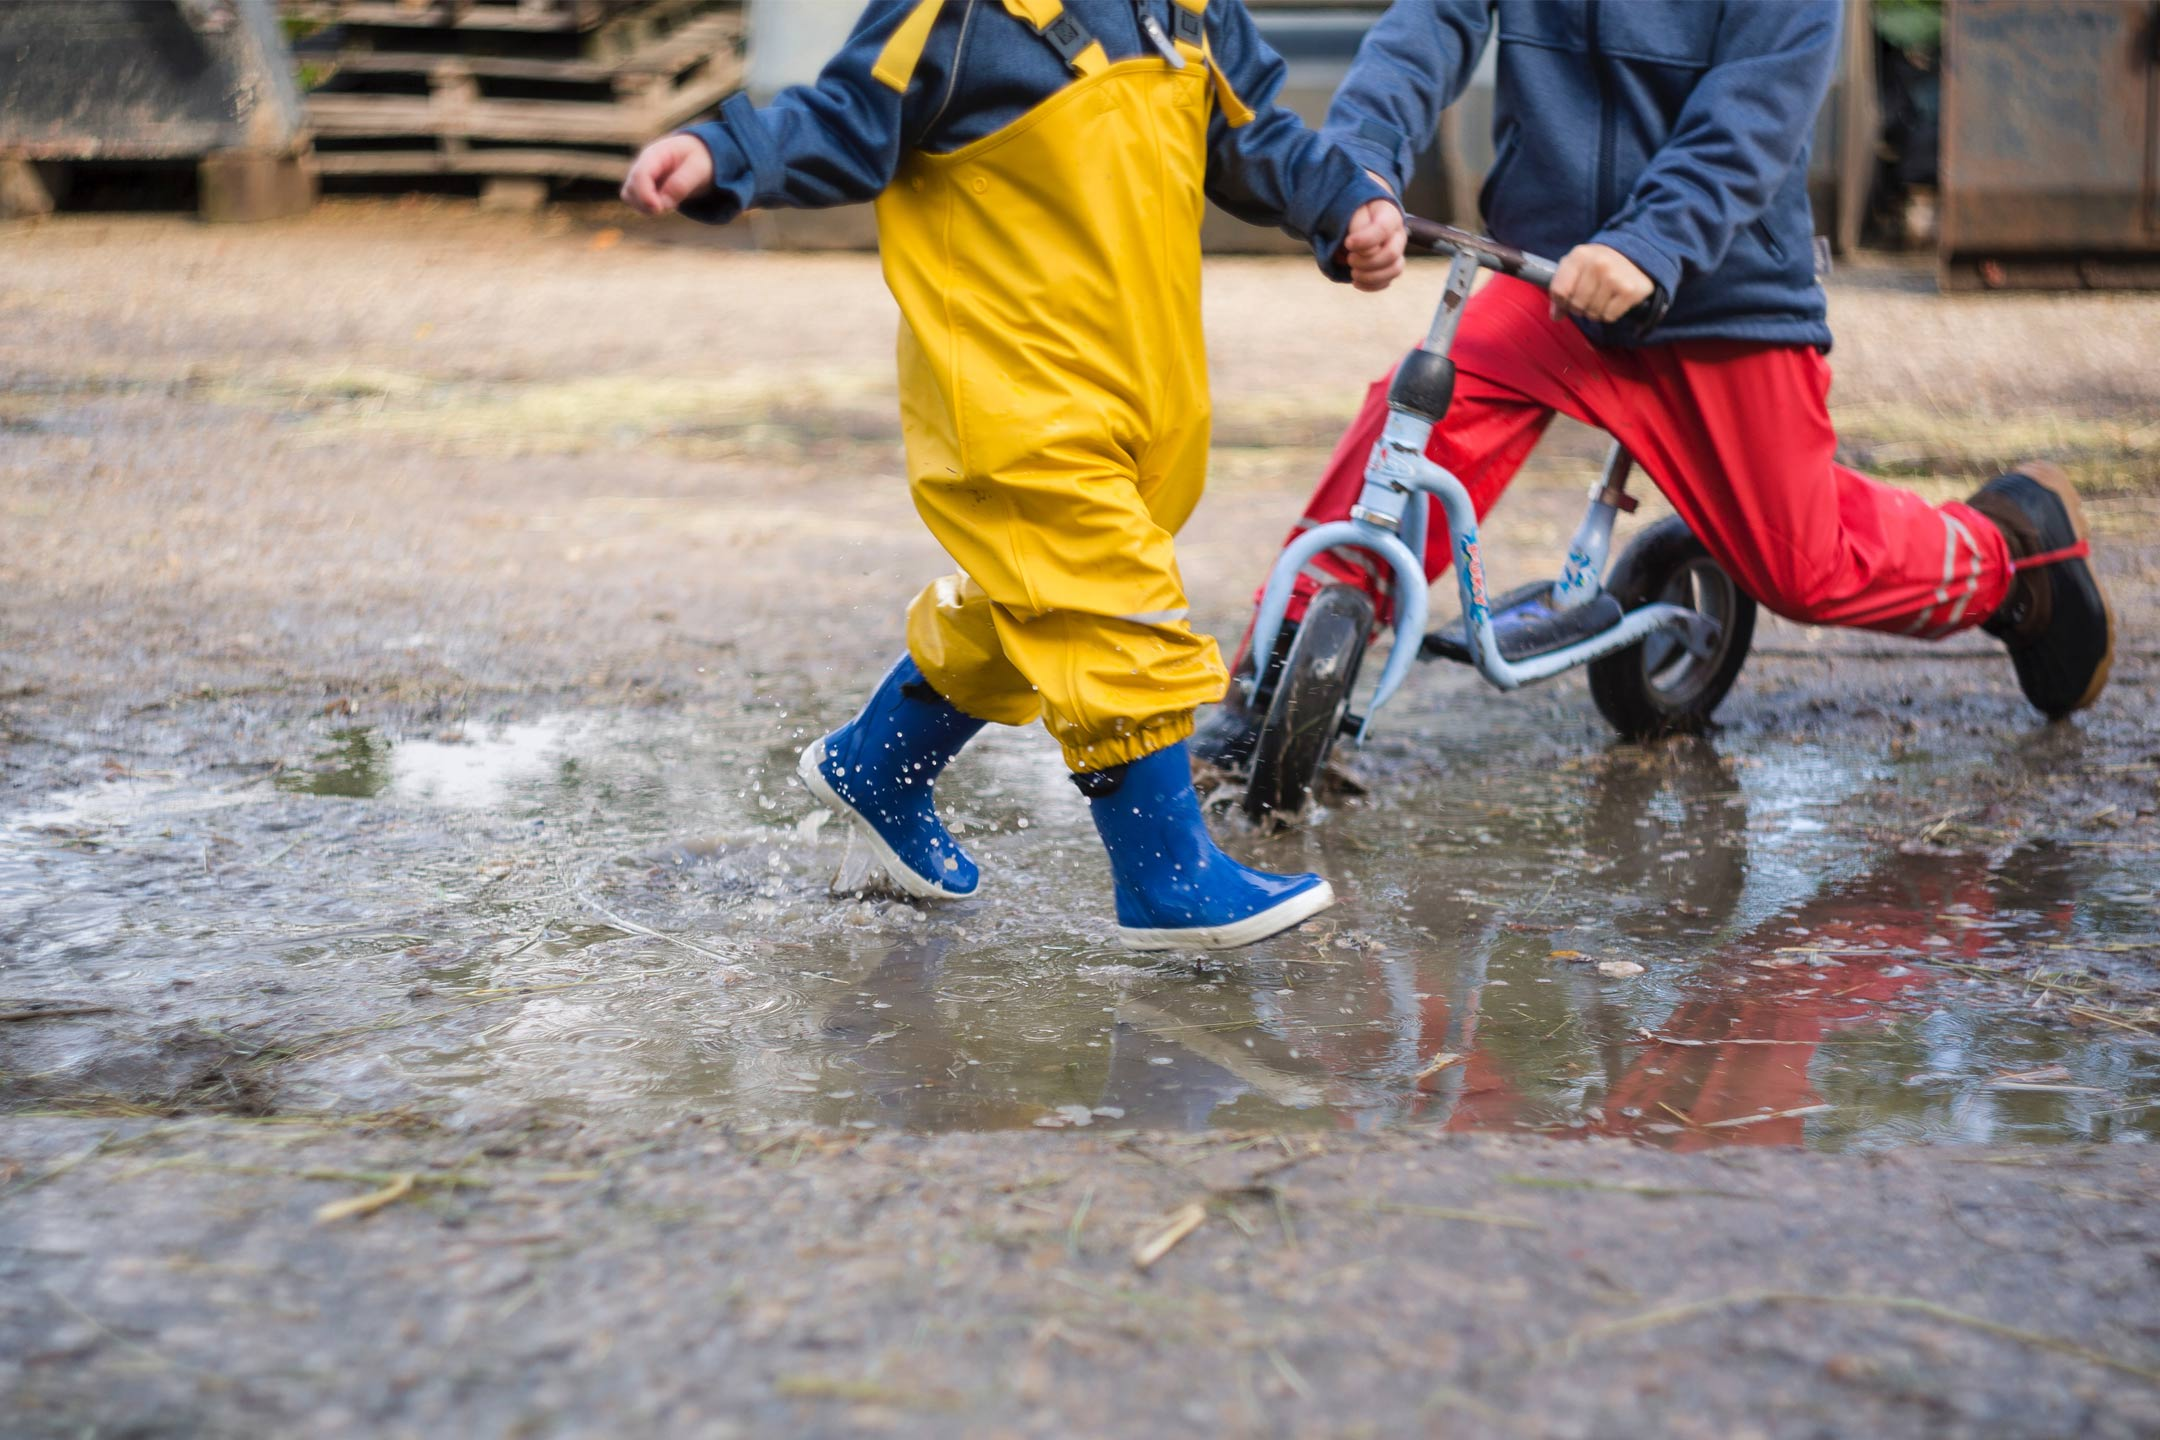 kids-bikes-splashing-mud2160